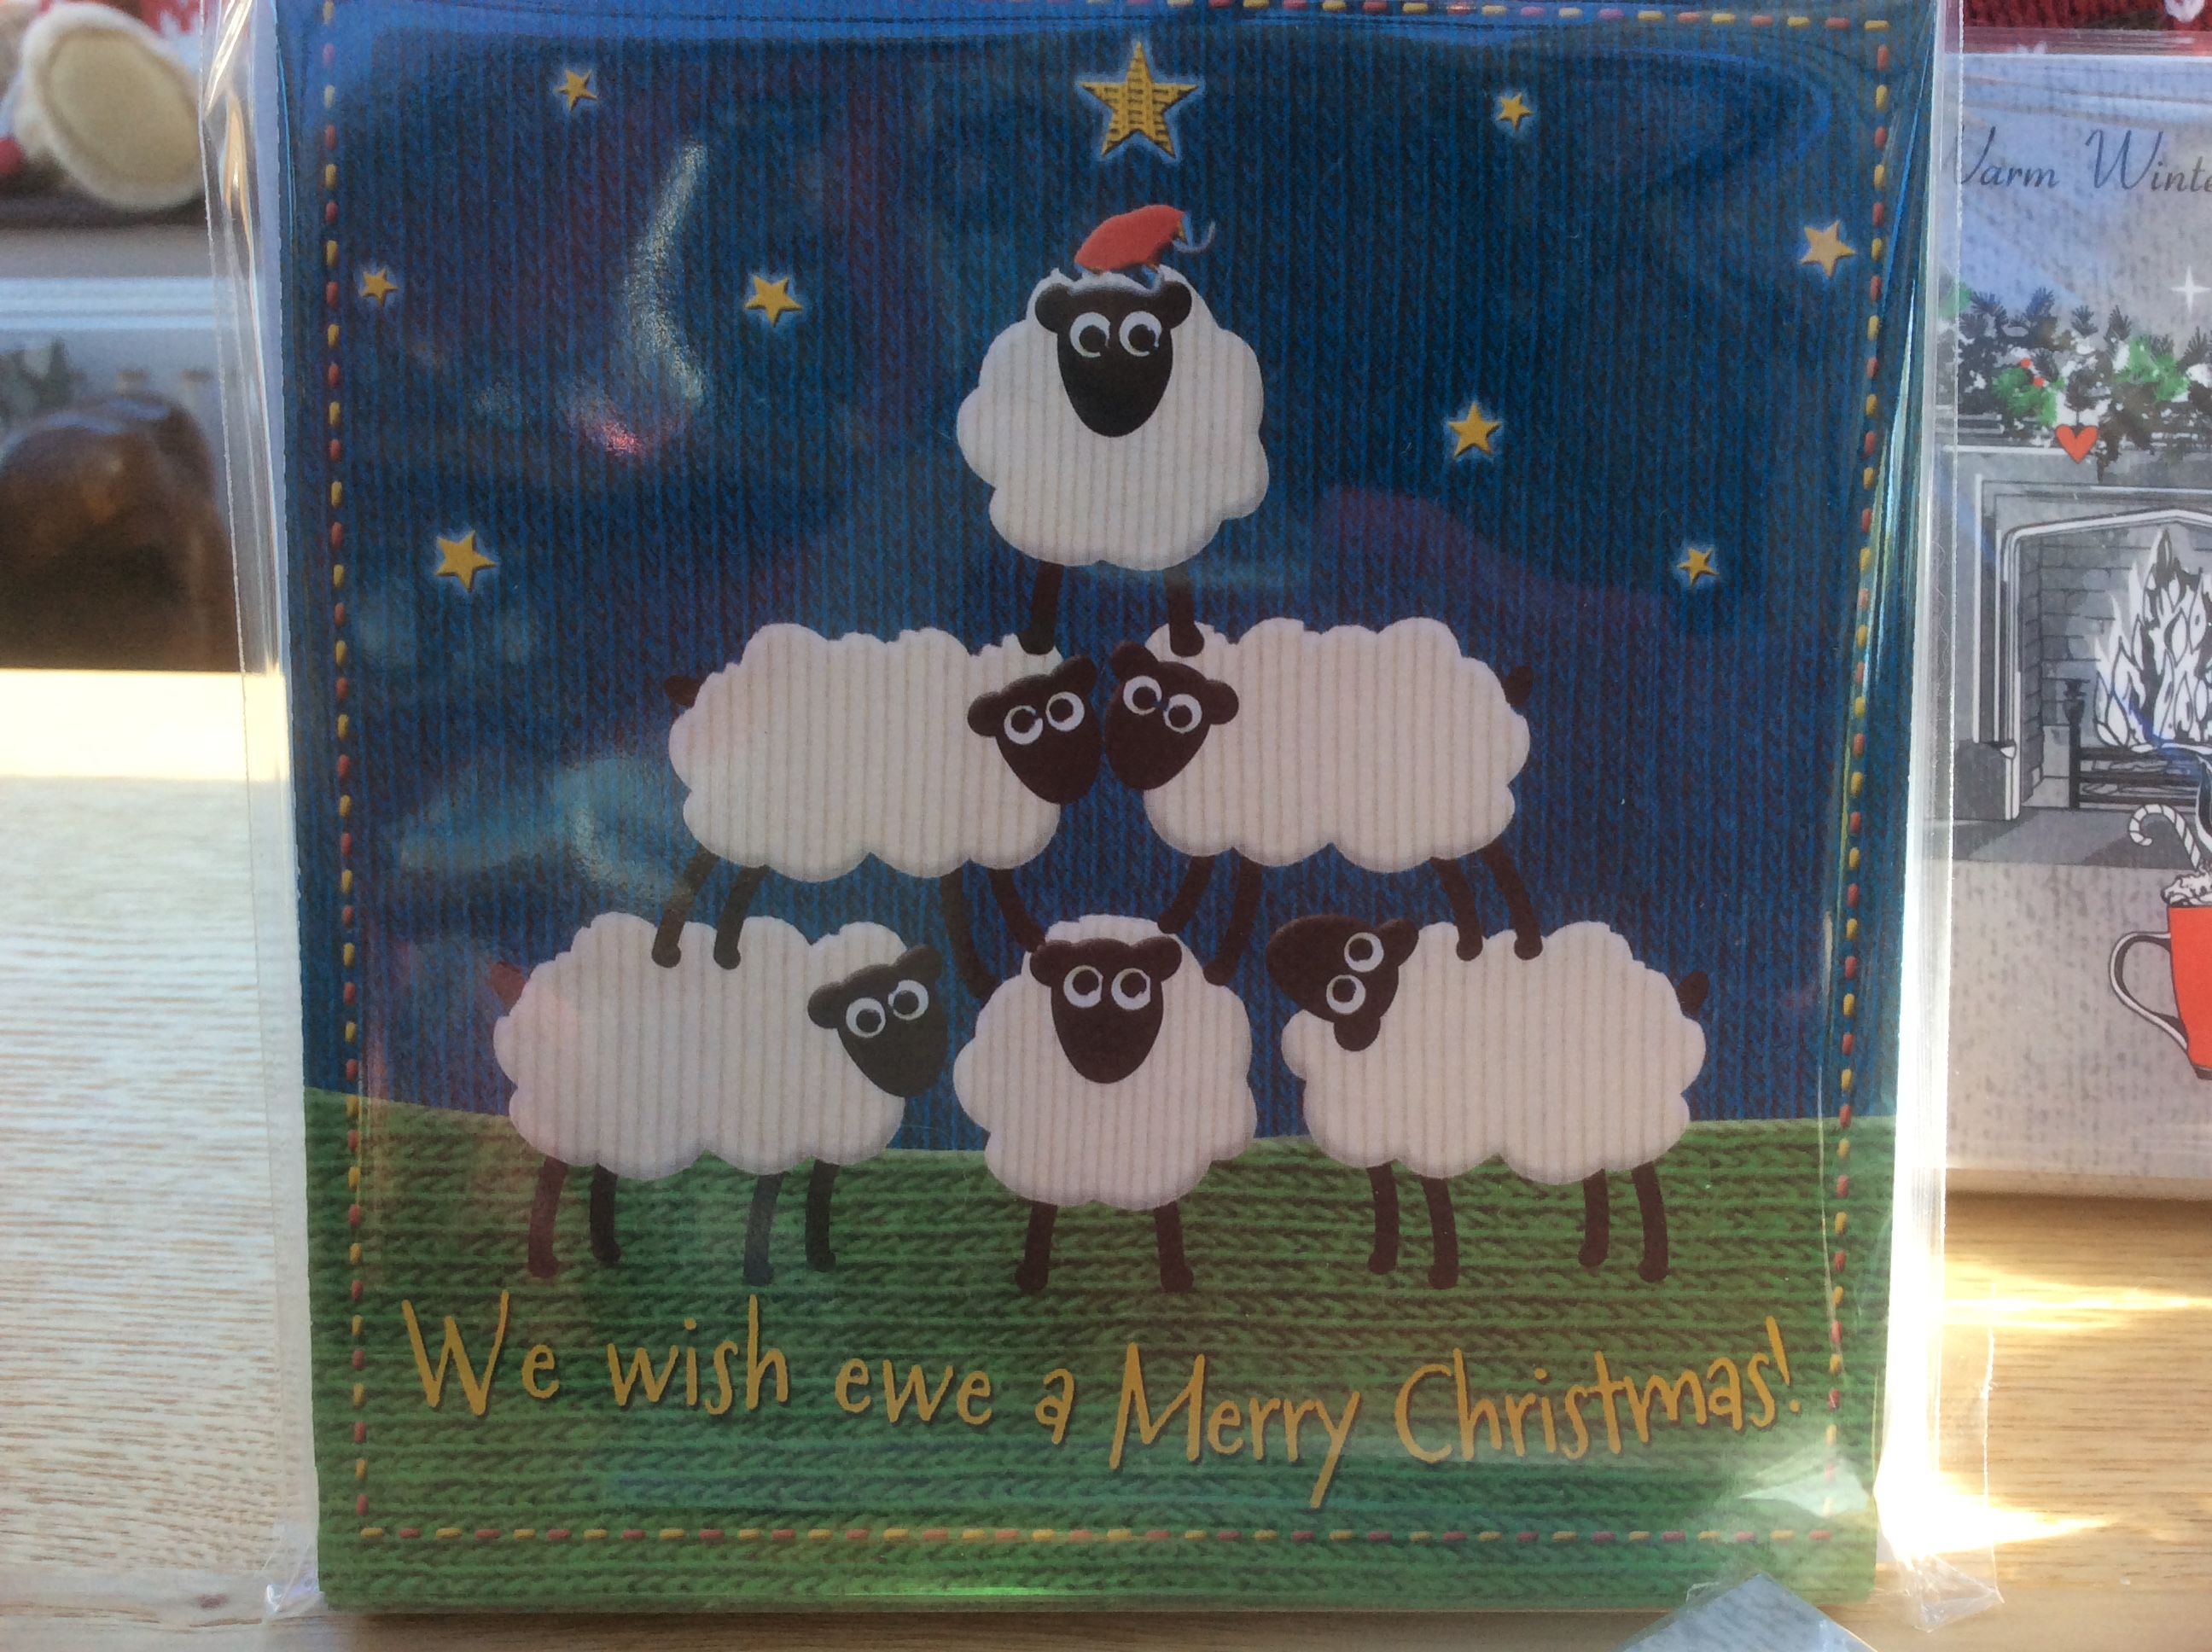 Christmas Cards for charity | individual card | We wish ewe a Merry Christmas | In aid of Burning Nights CRPS Support